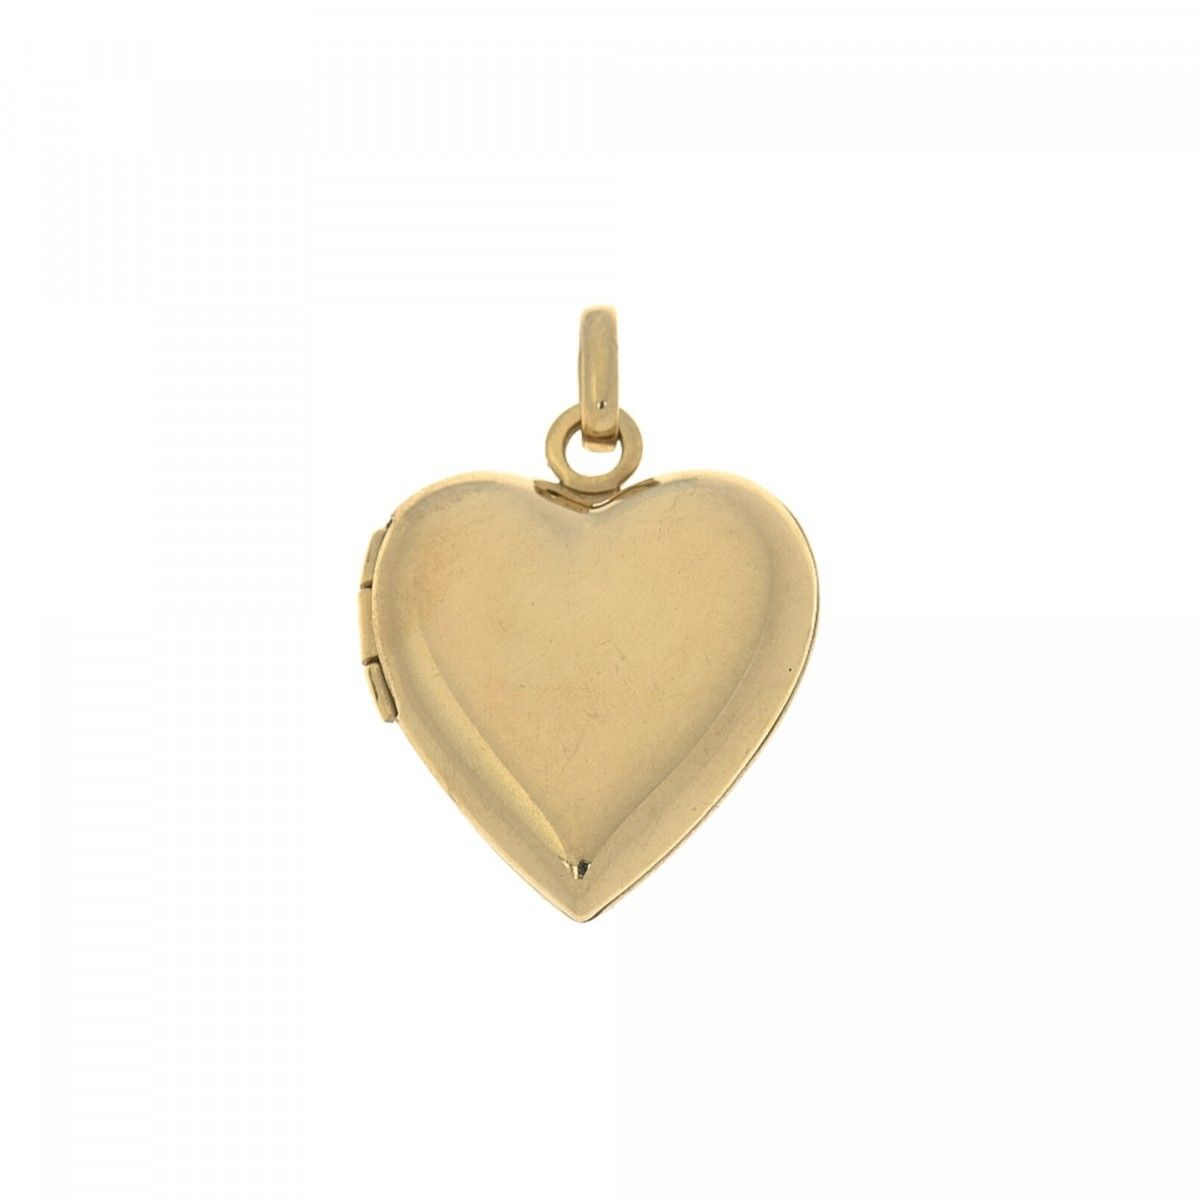 view com petite kyhdwmc styleskier yellow necklace of aesthetics the gold pendant locket quick a